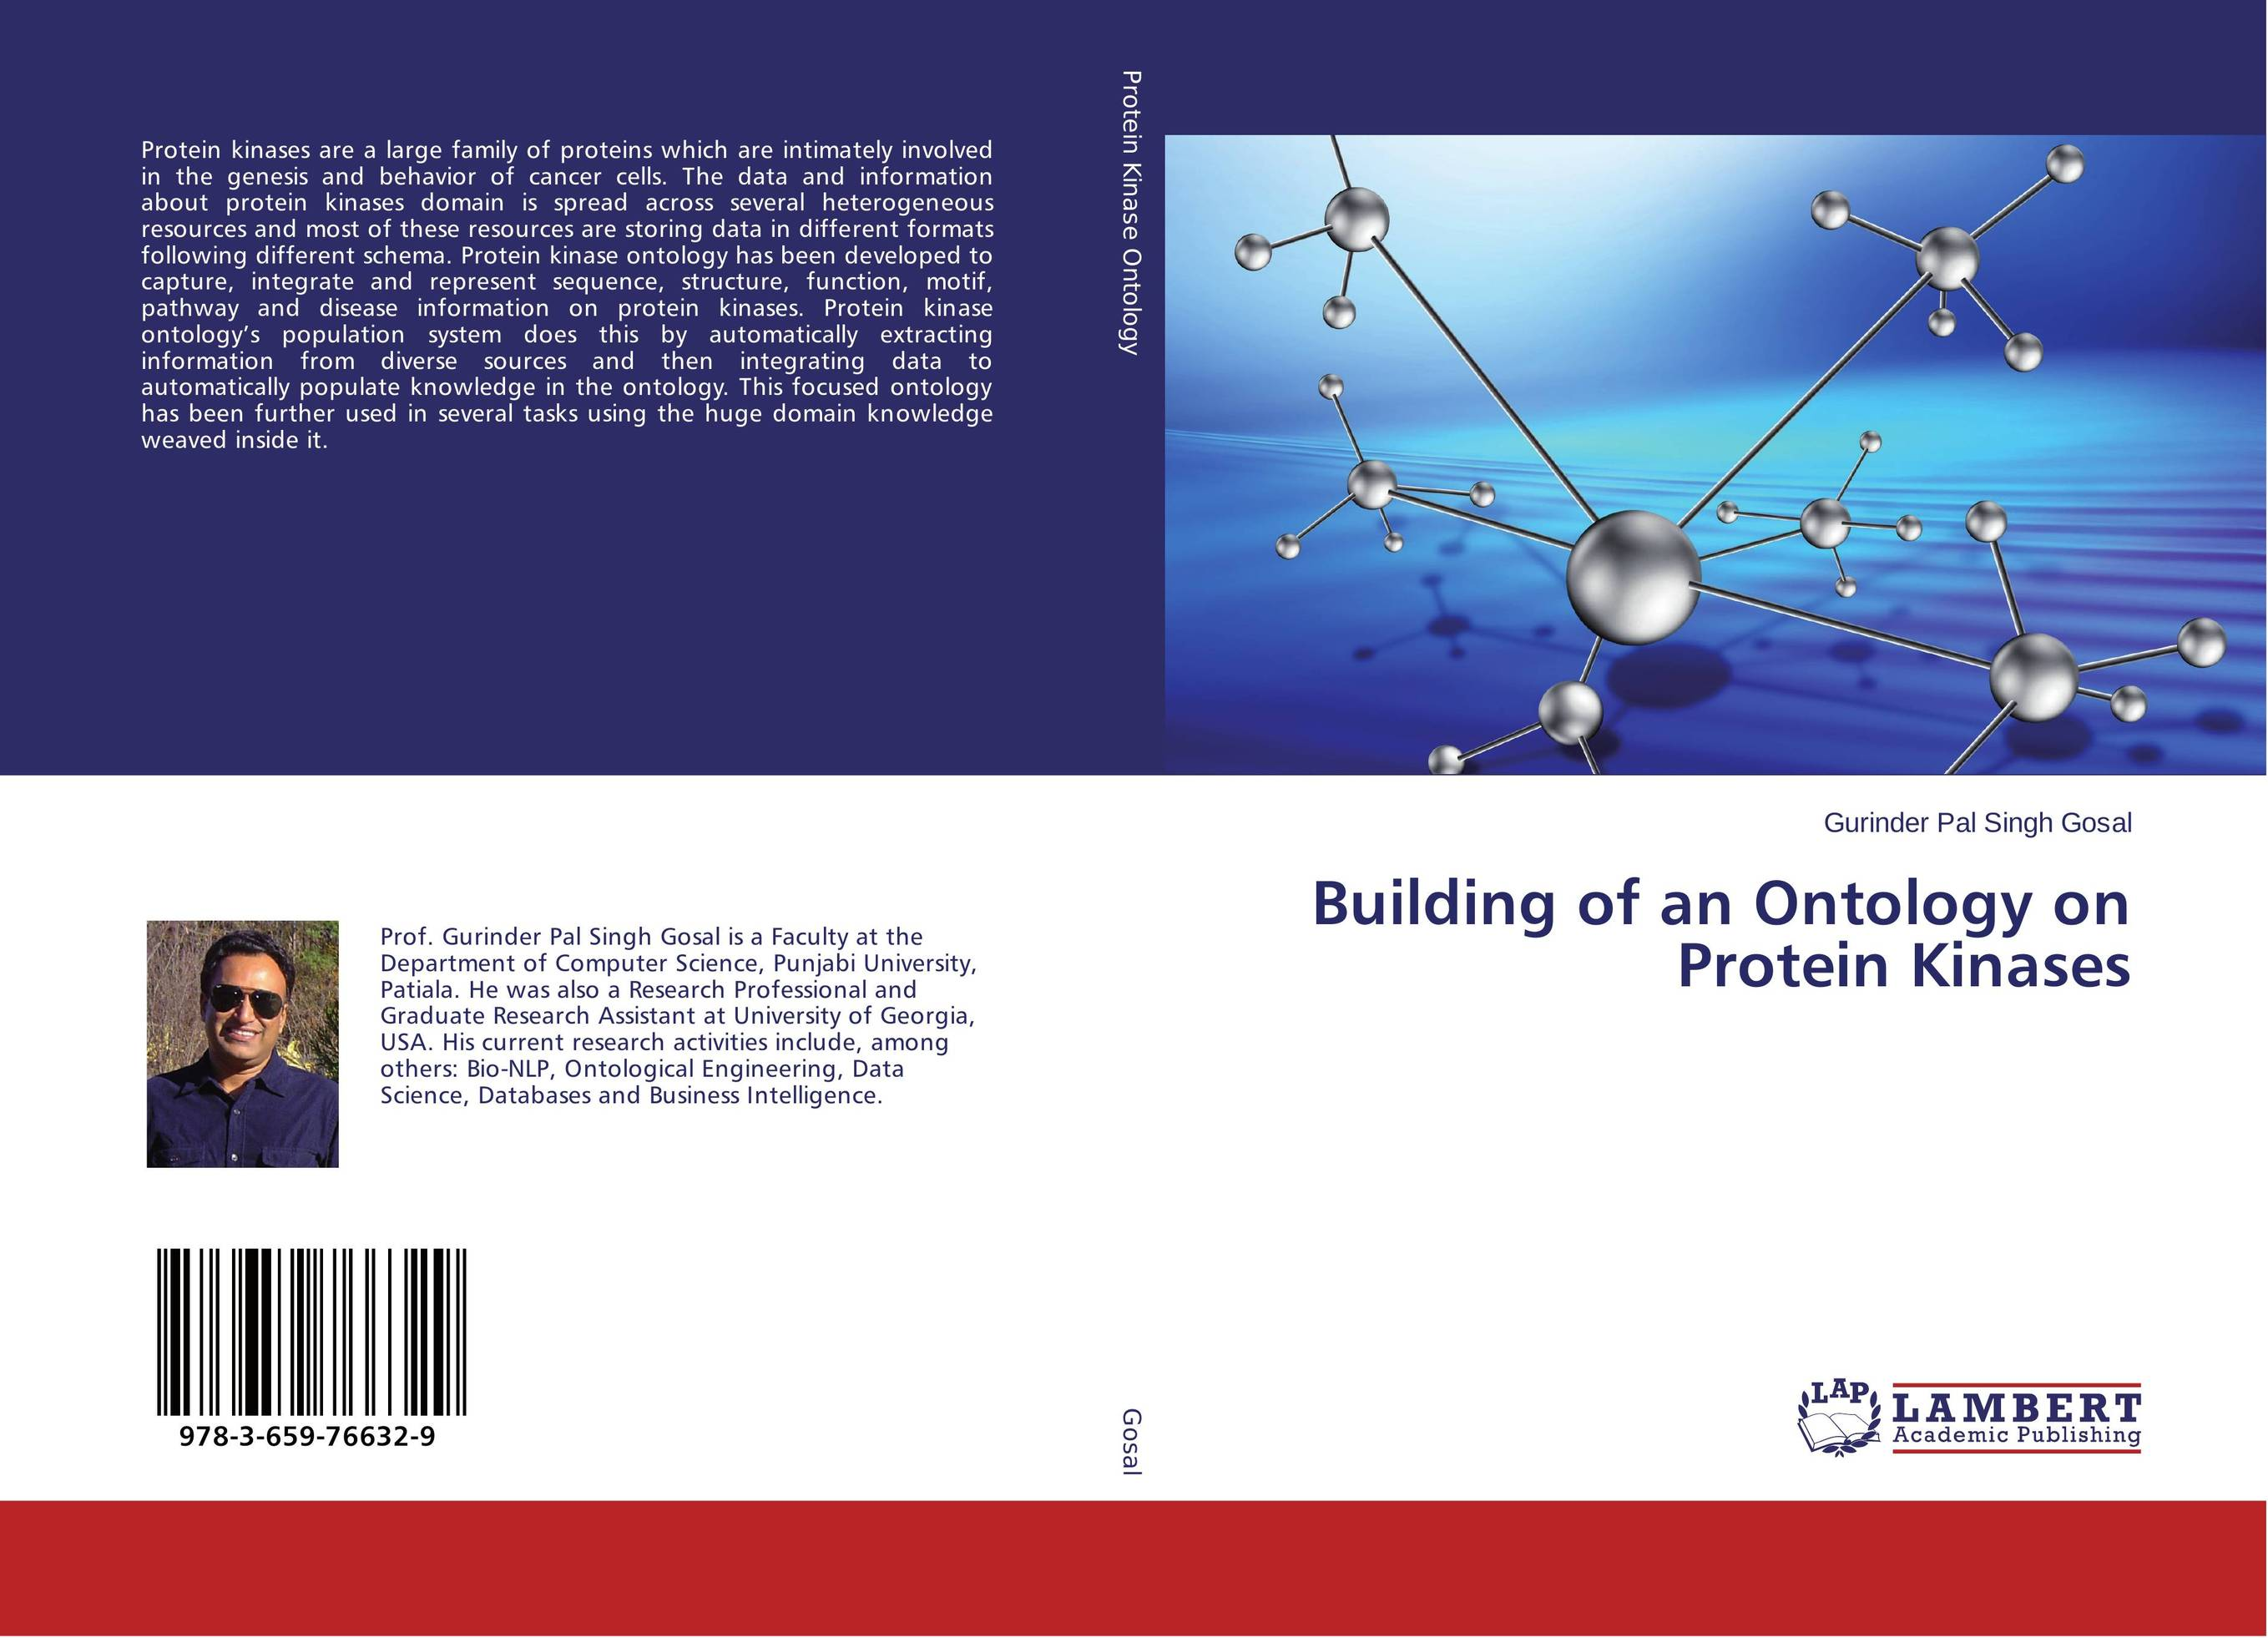 Building of an Ontology on Protein Kinases bioinformatic approaches to structure and function of protein